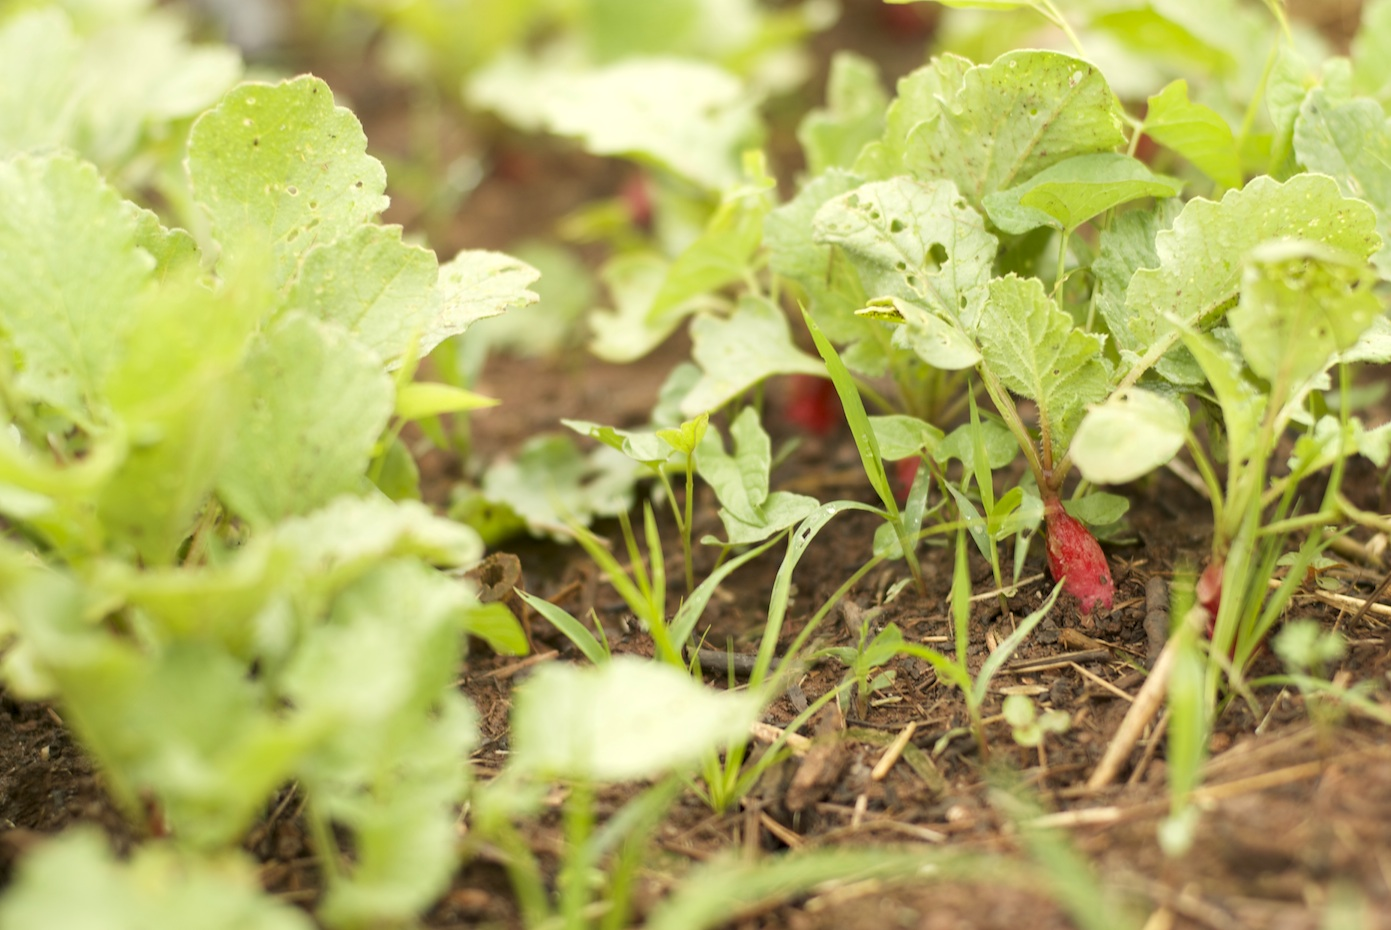 [Low to the ground, several tiny radishes poking up from the soil. Most of the plant is frilly green leaves.]